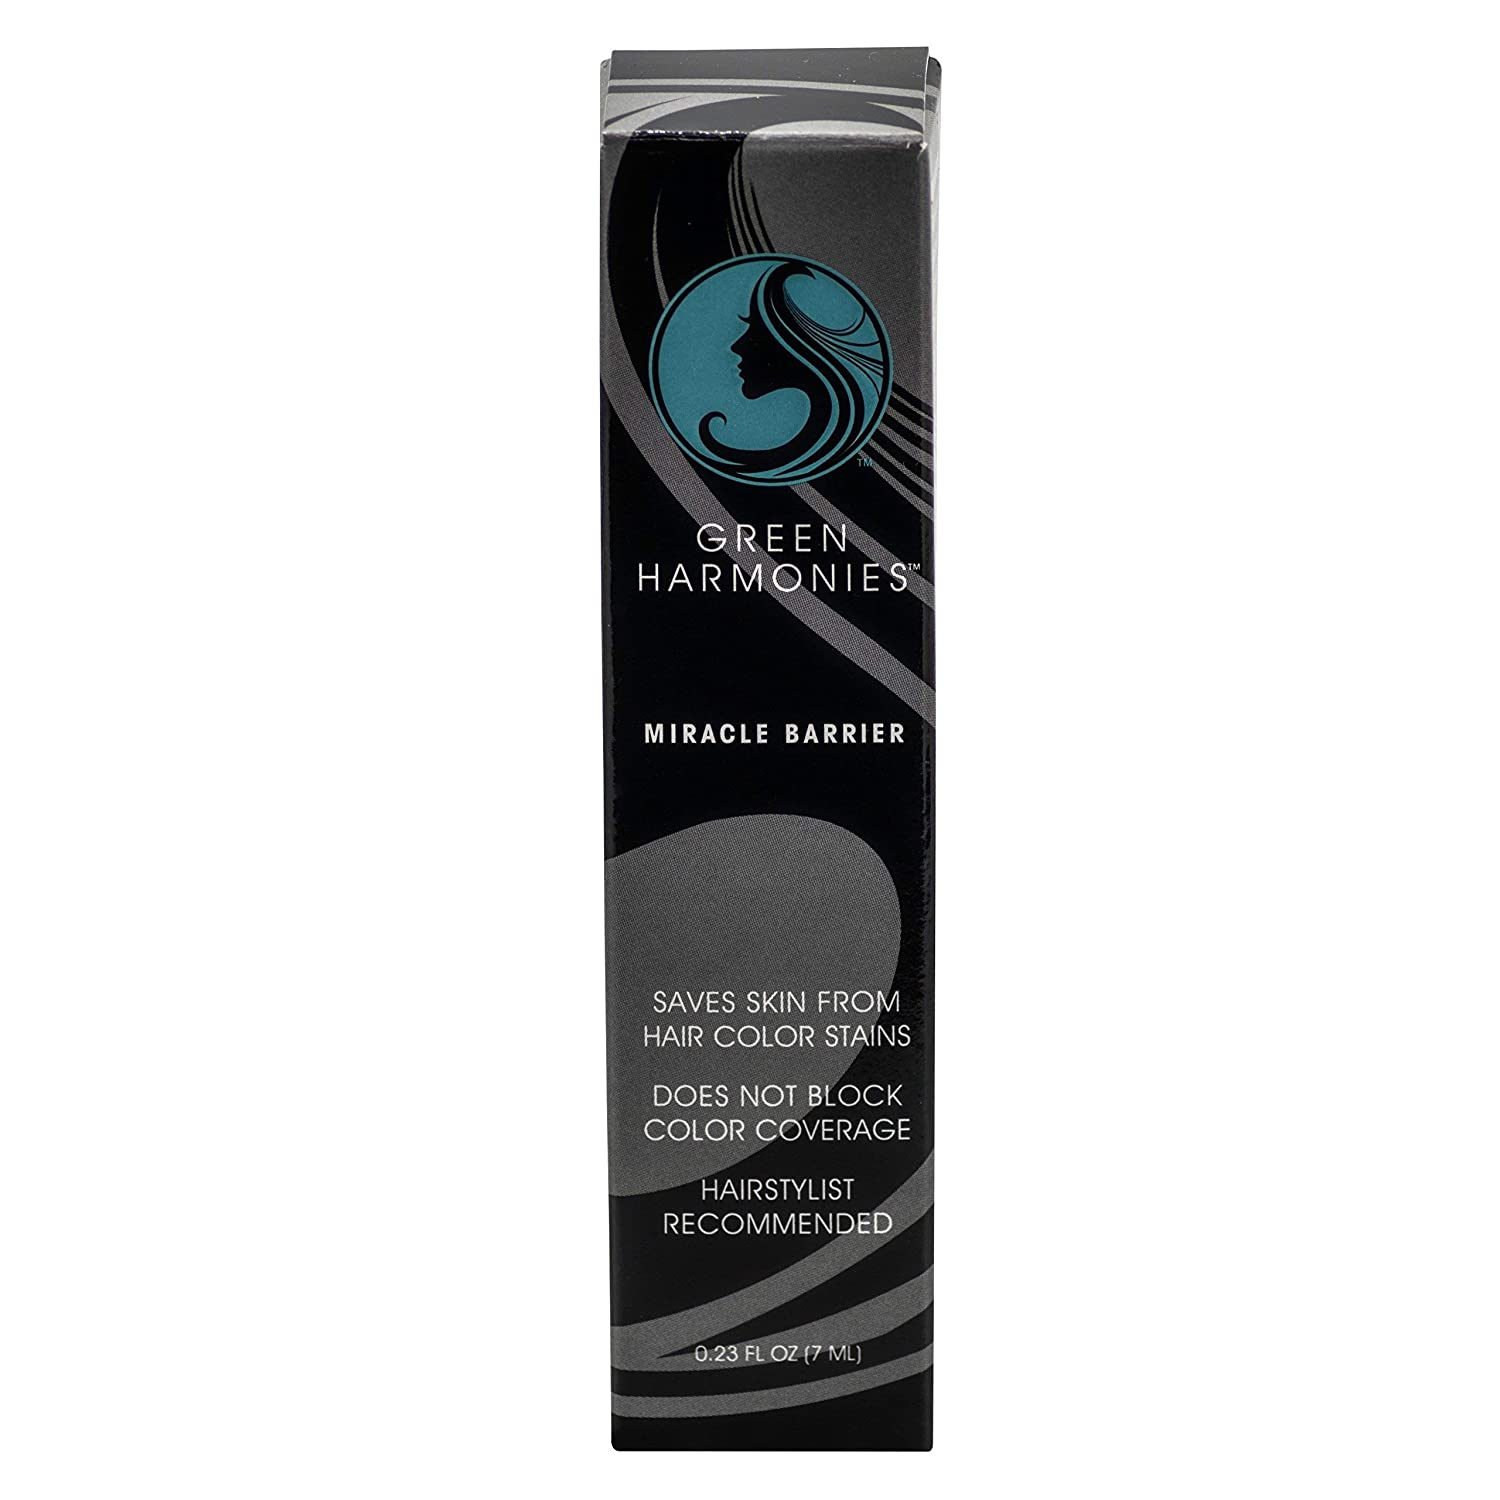 Miracle Barrier hair color barrier cream. Salon approved & tested a perfect stain protector! A quick and easy way to avoid color stains! Ideal for all hair color needs. Use it at home or in the salon!